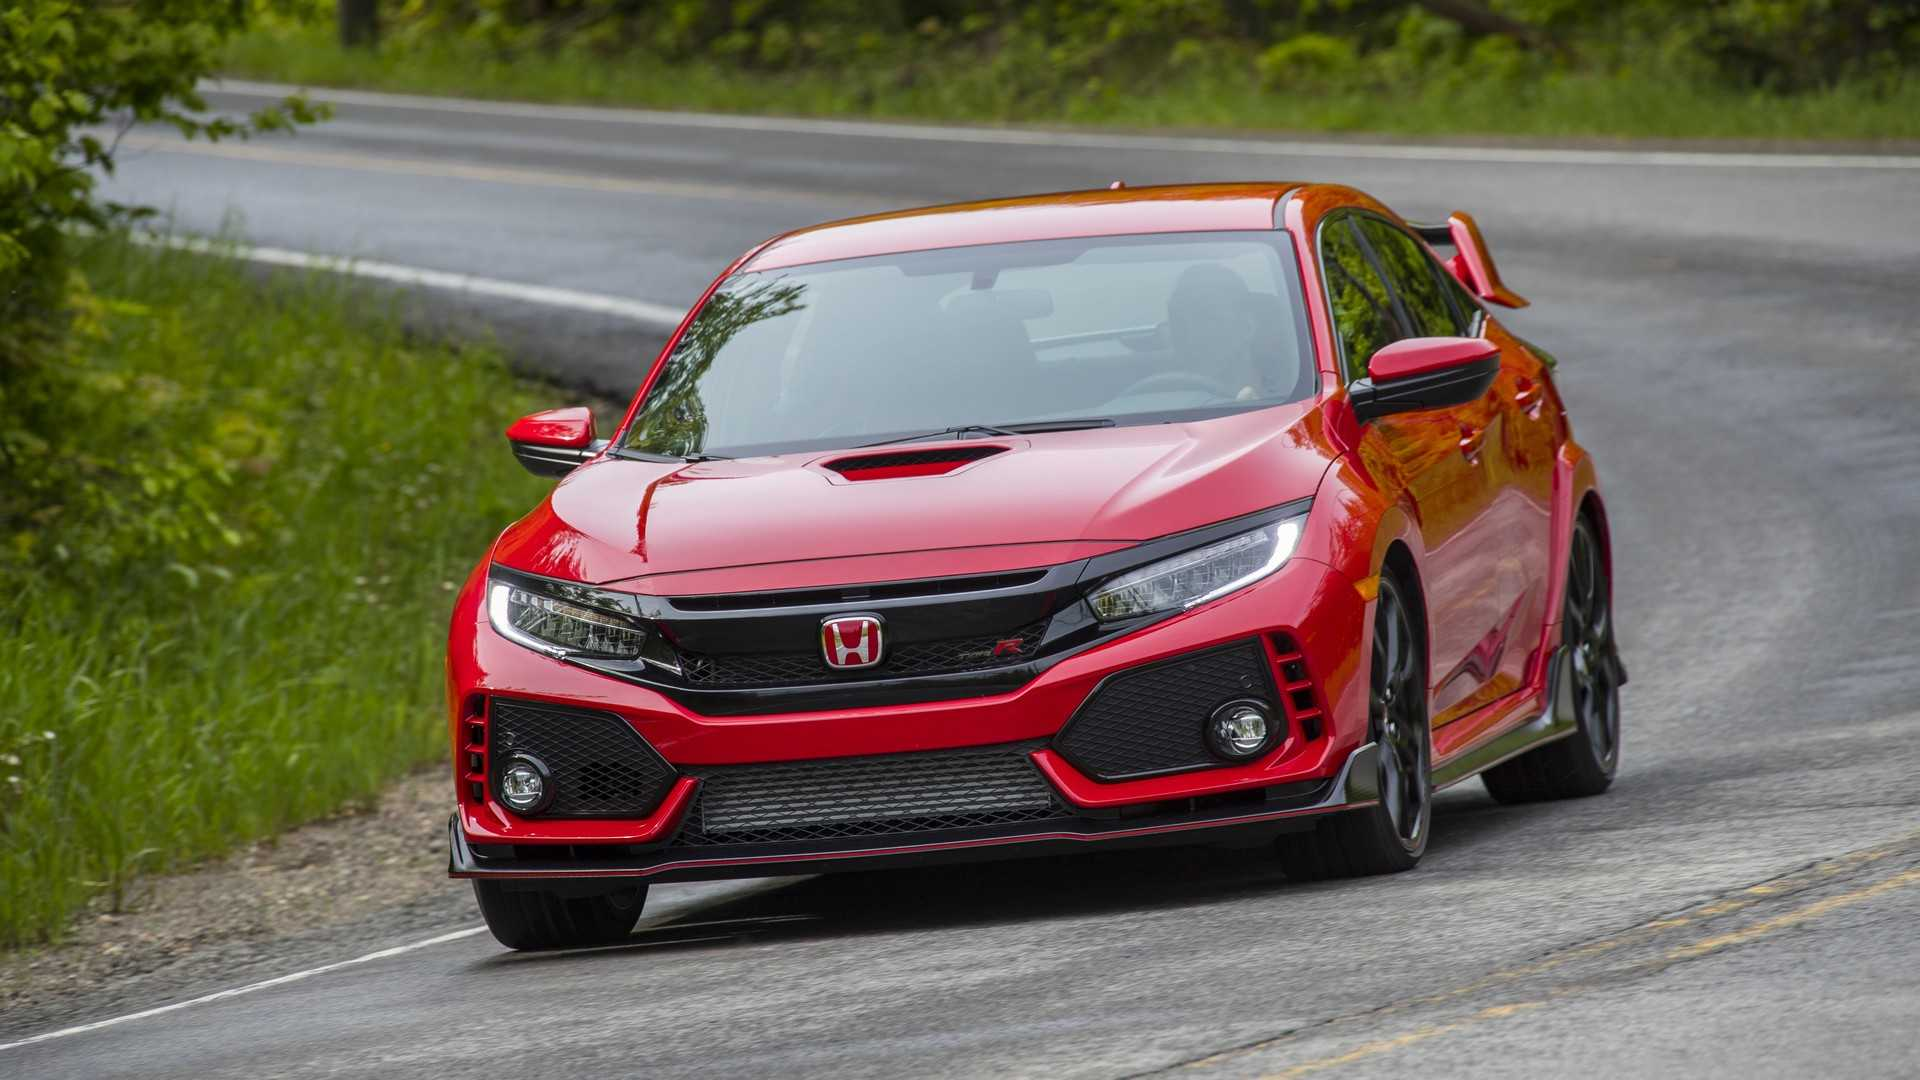 46 All New 2019 Honda Civic Photos with 2019 Honda Civic